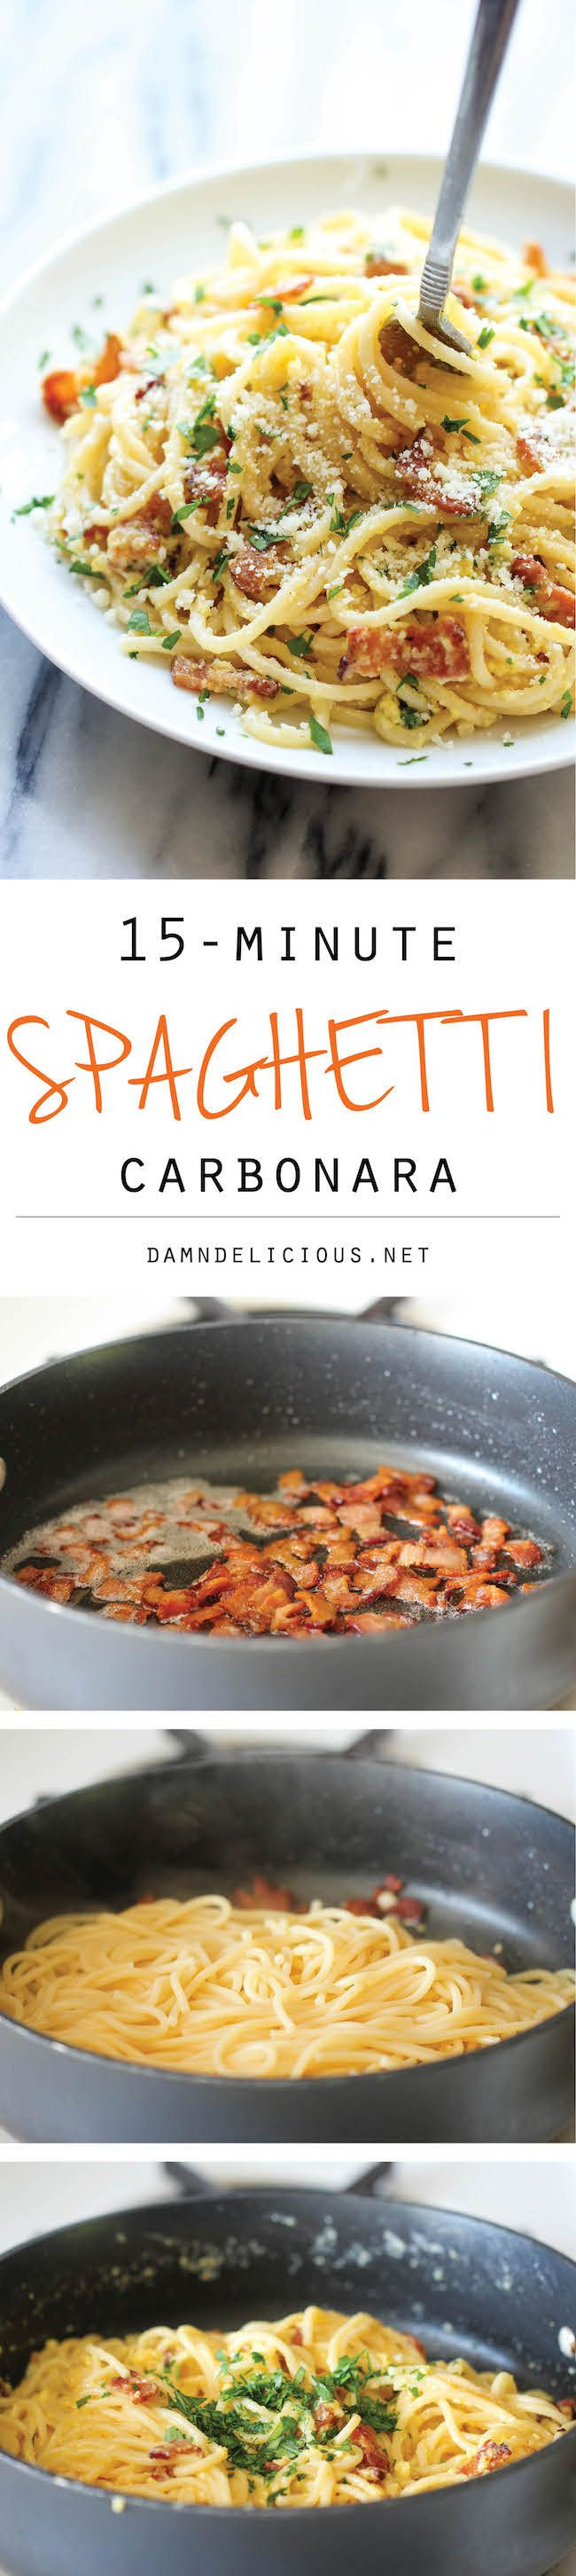 Spaghetti Carbonara - The easiest pasta dish you will ever make with just 5 ingredients in 15 minutes, loaded with Parmesan and bacon! #OnePotPasta